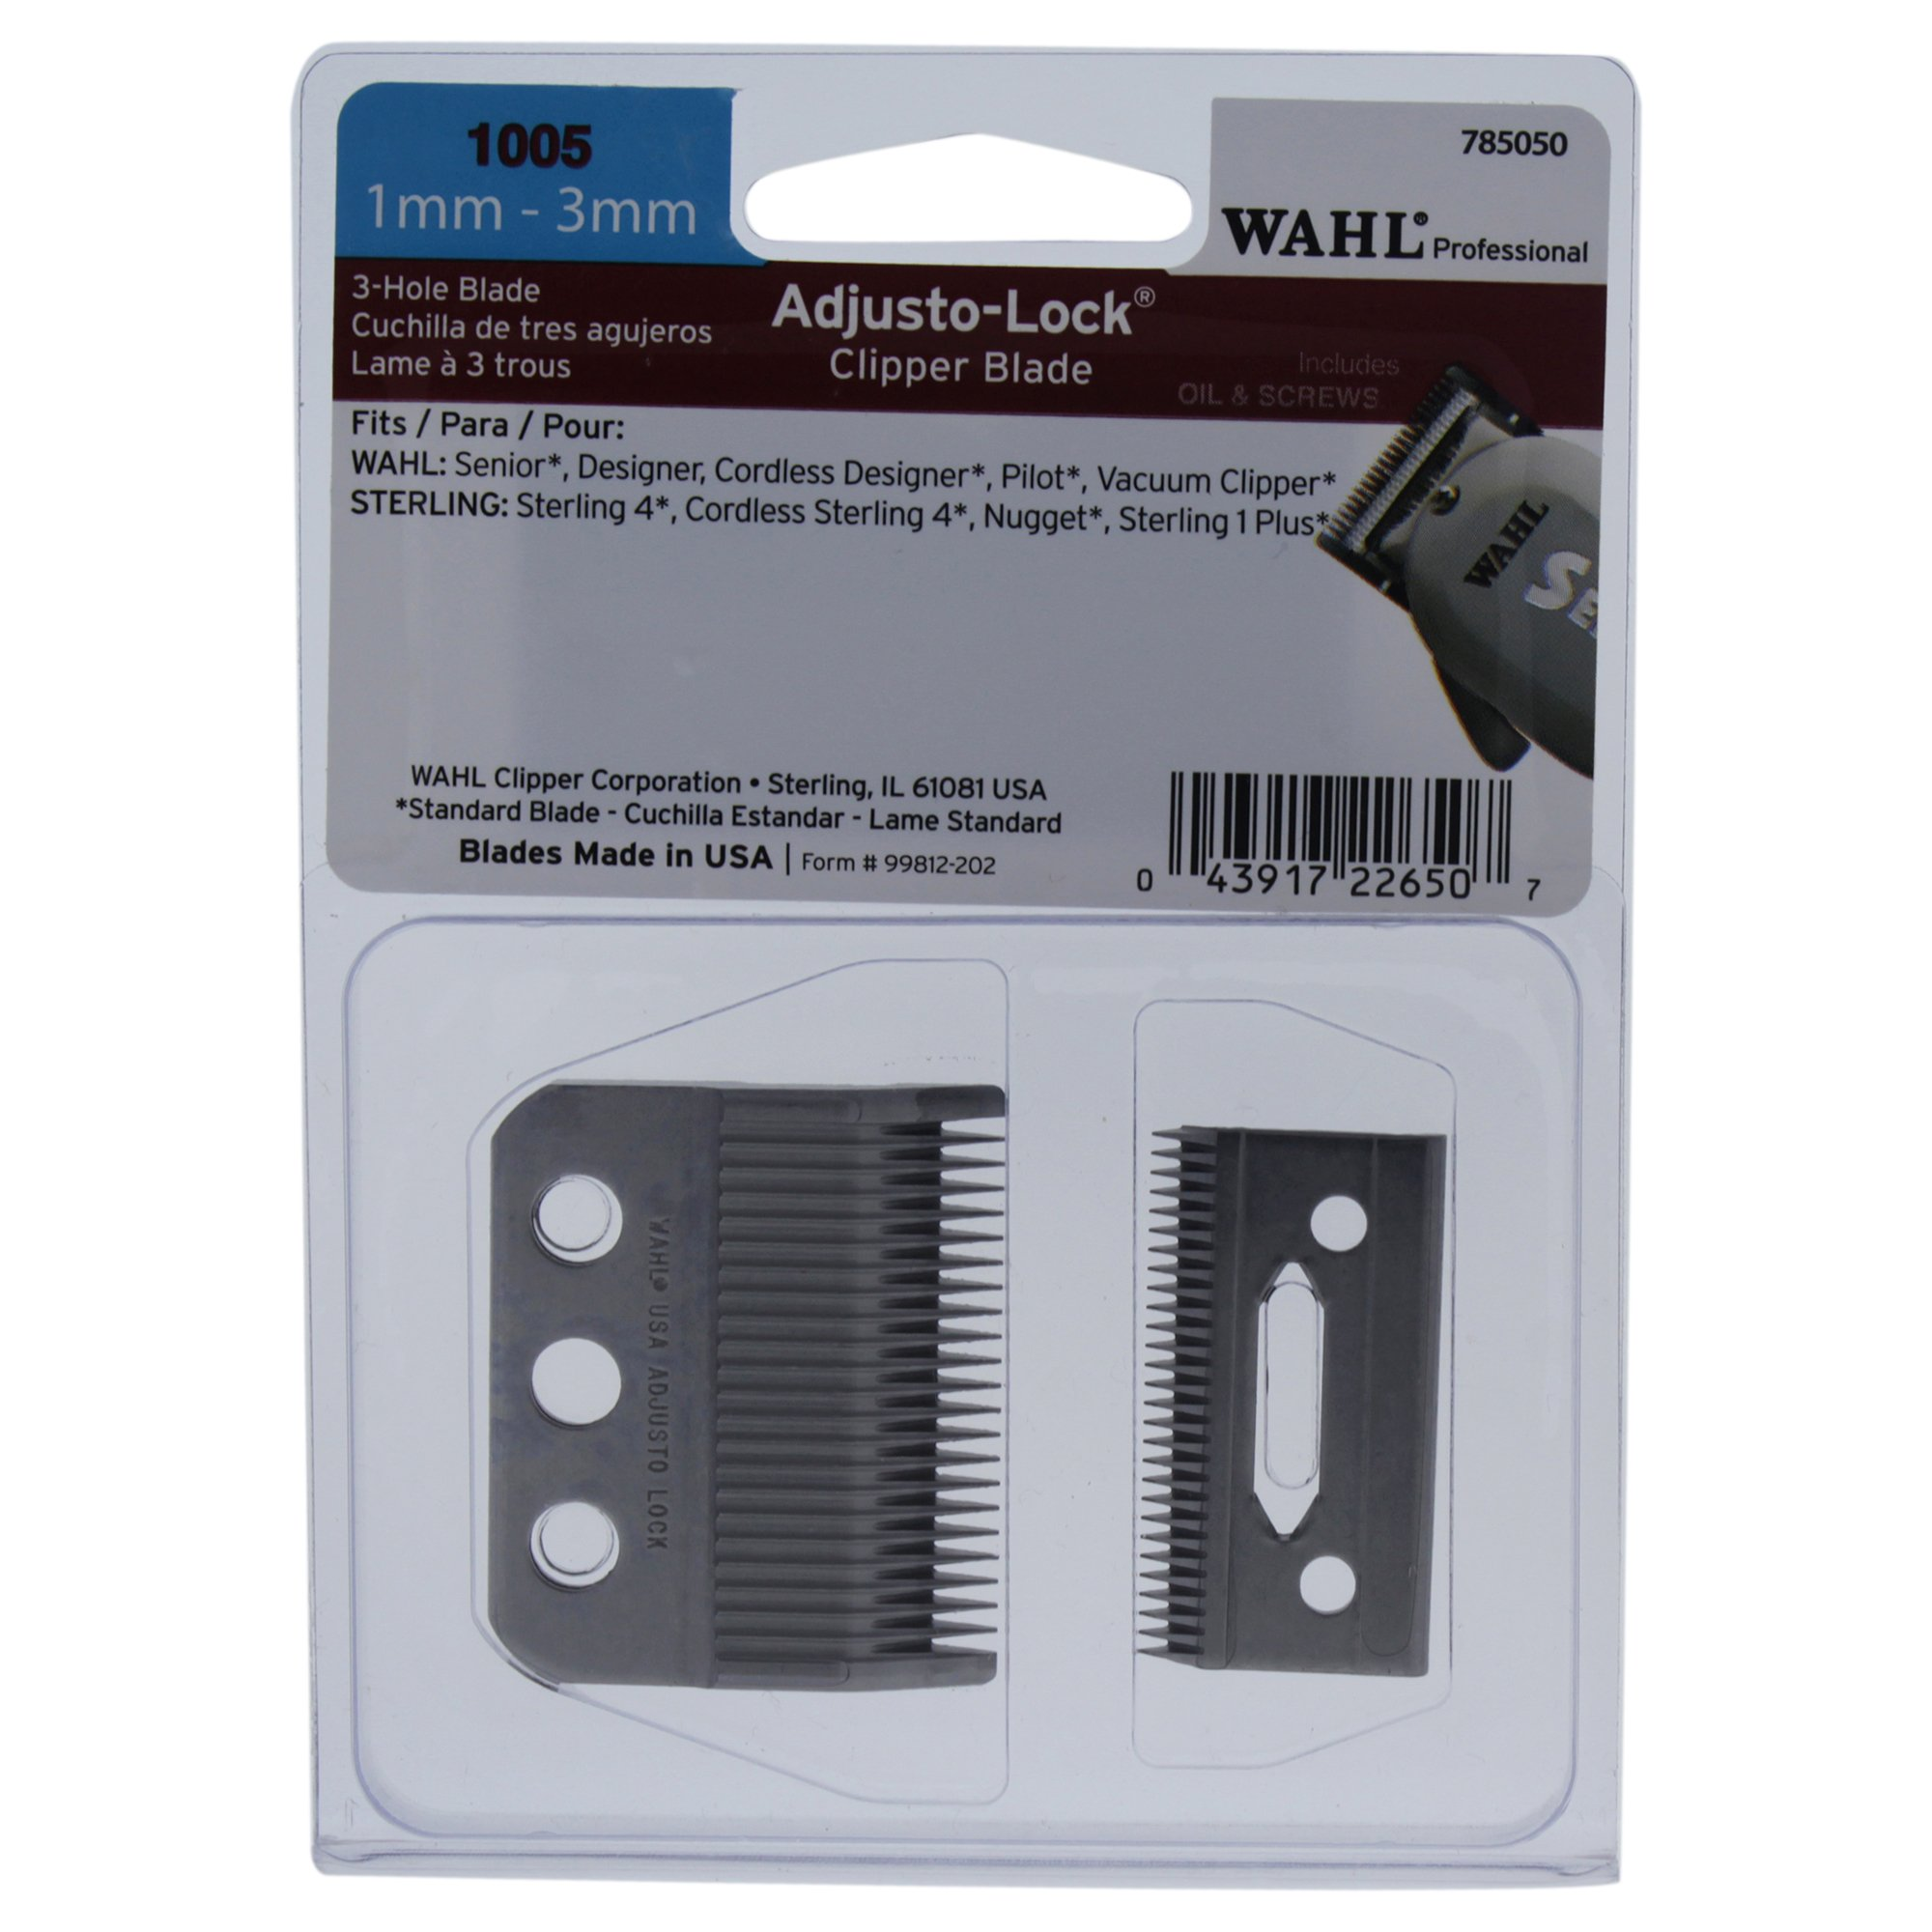 Cheap Wahl Clipper Oil Find Deals On Line At Classic Series 1 Usa Get Quotations Professional Adjusto Lock 1mm 3mm Blade 1005 Great